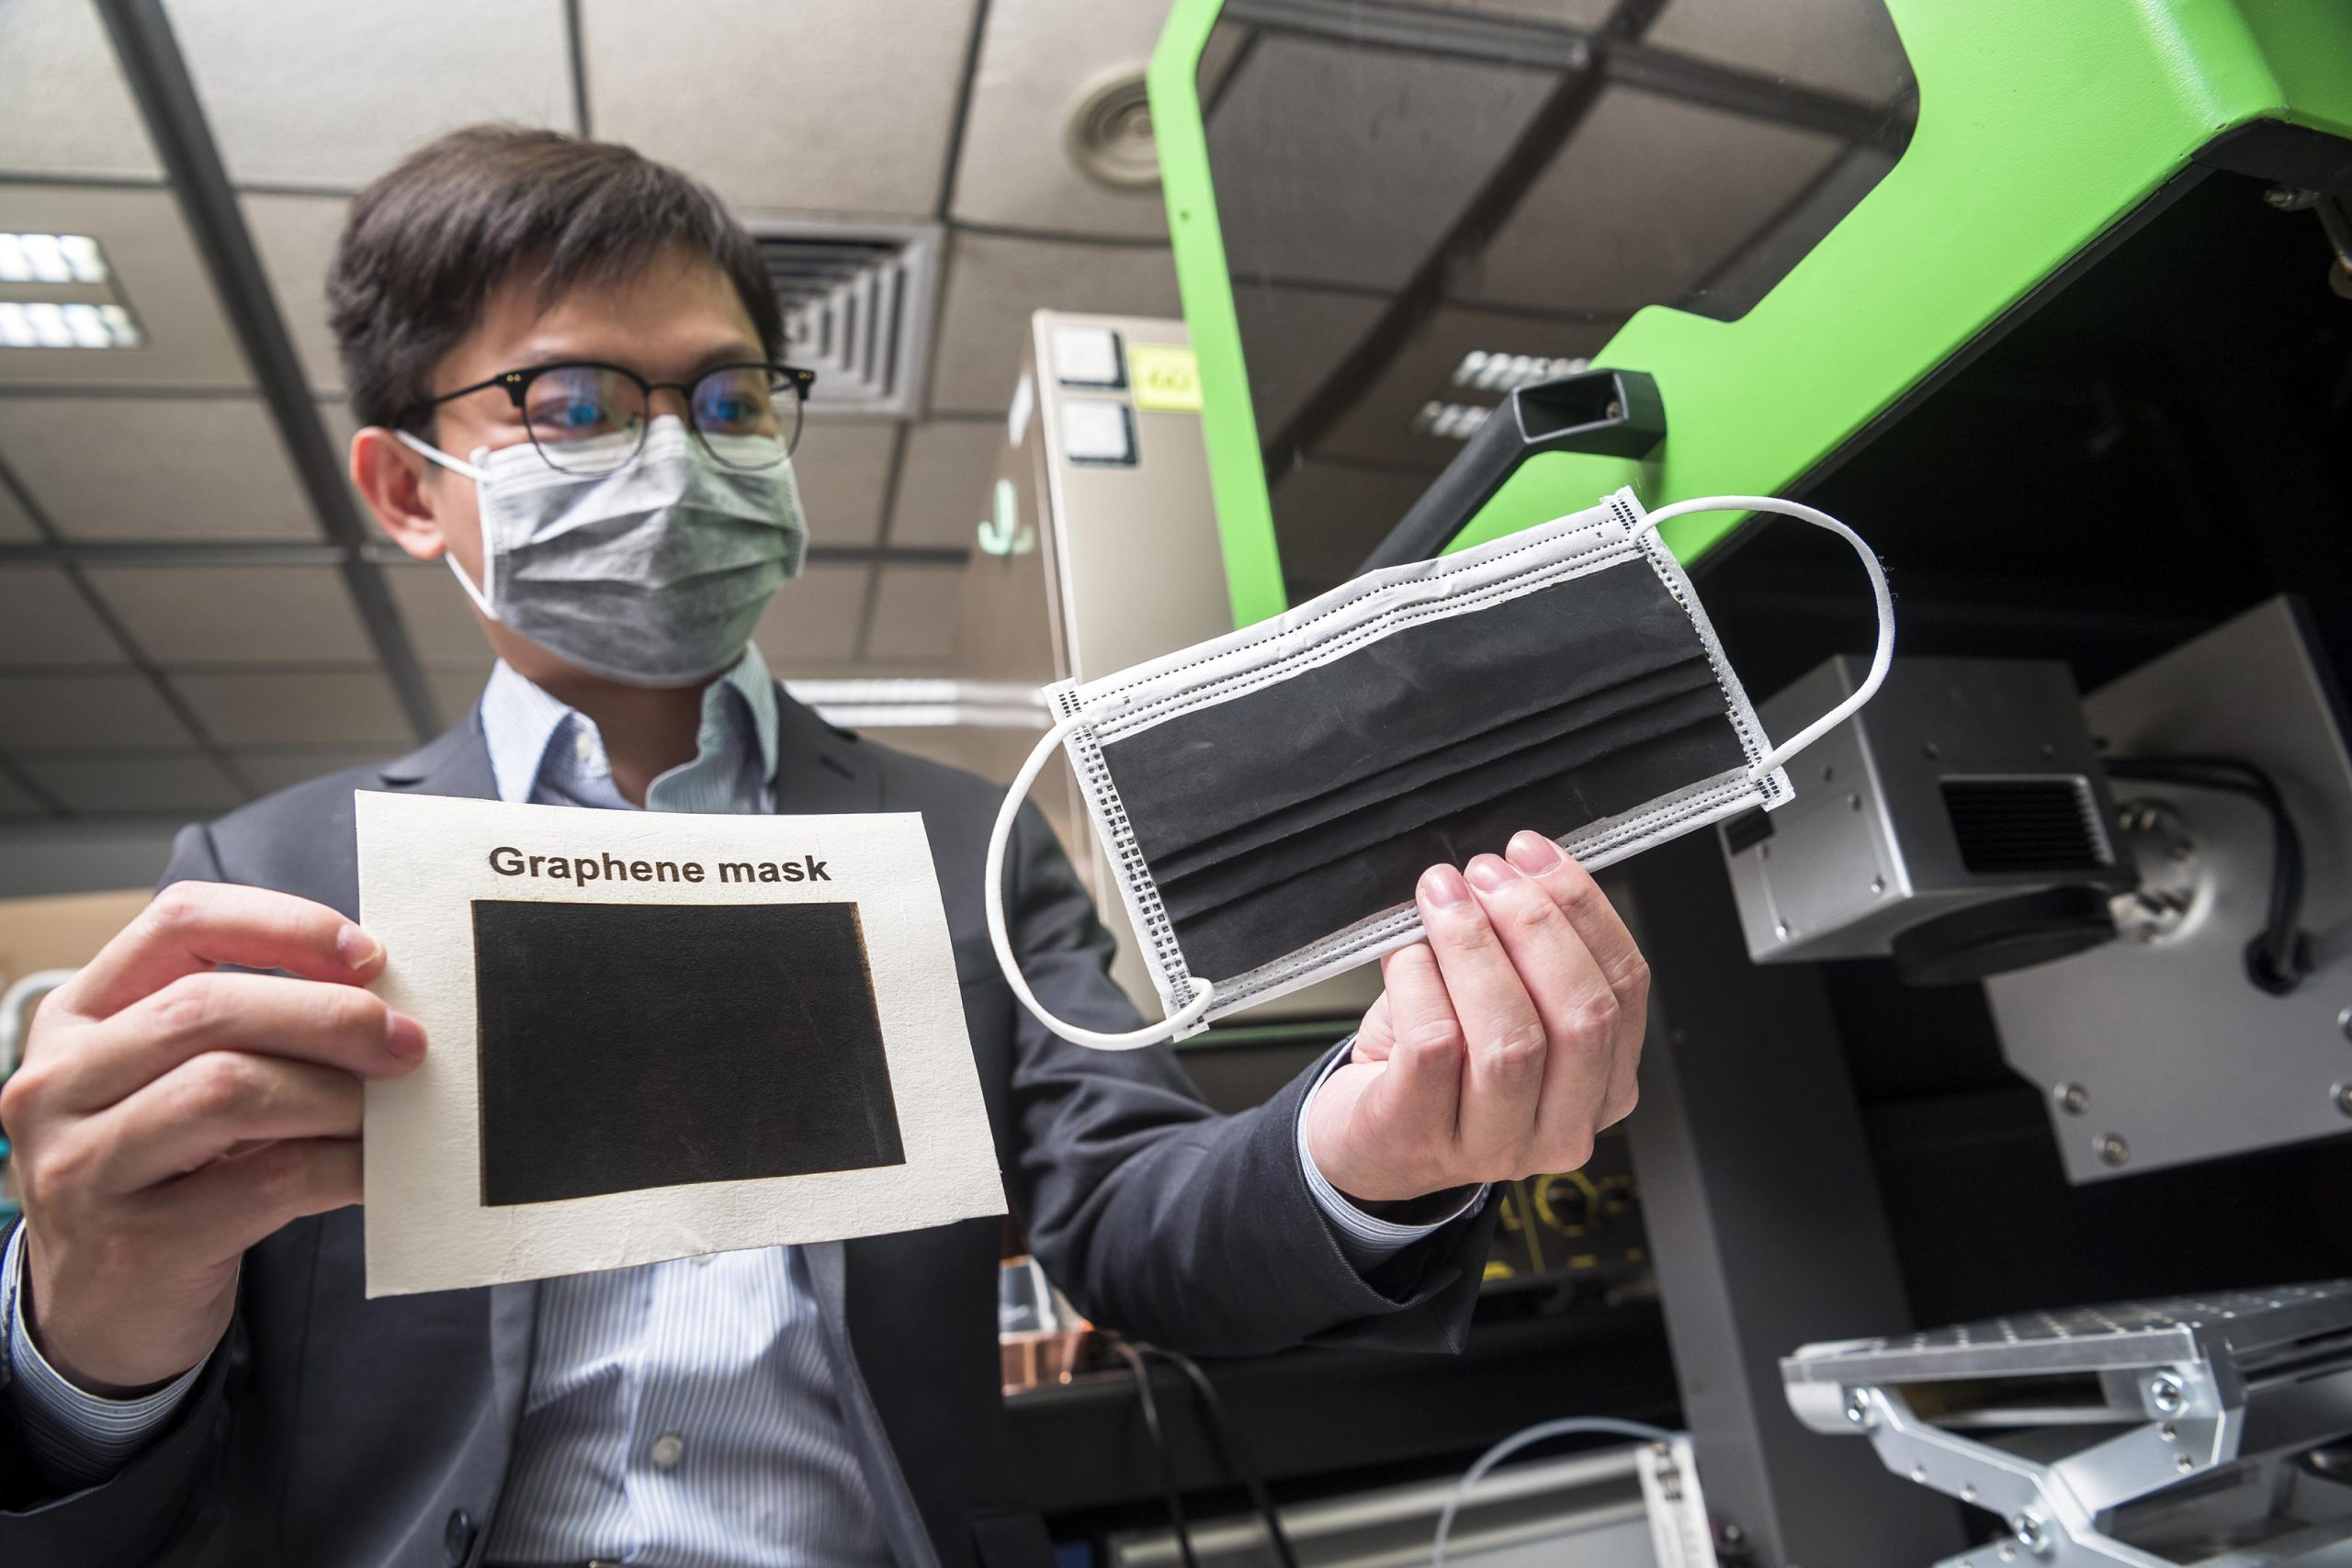 New Graphene Face Masks Offer Very High Anti-bacterial Efficiency, Dea... image